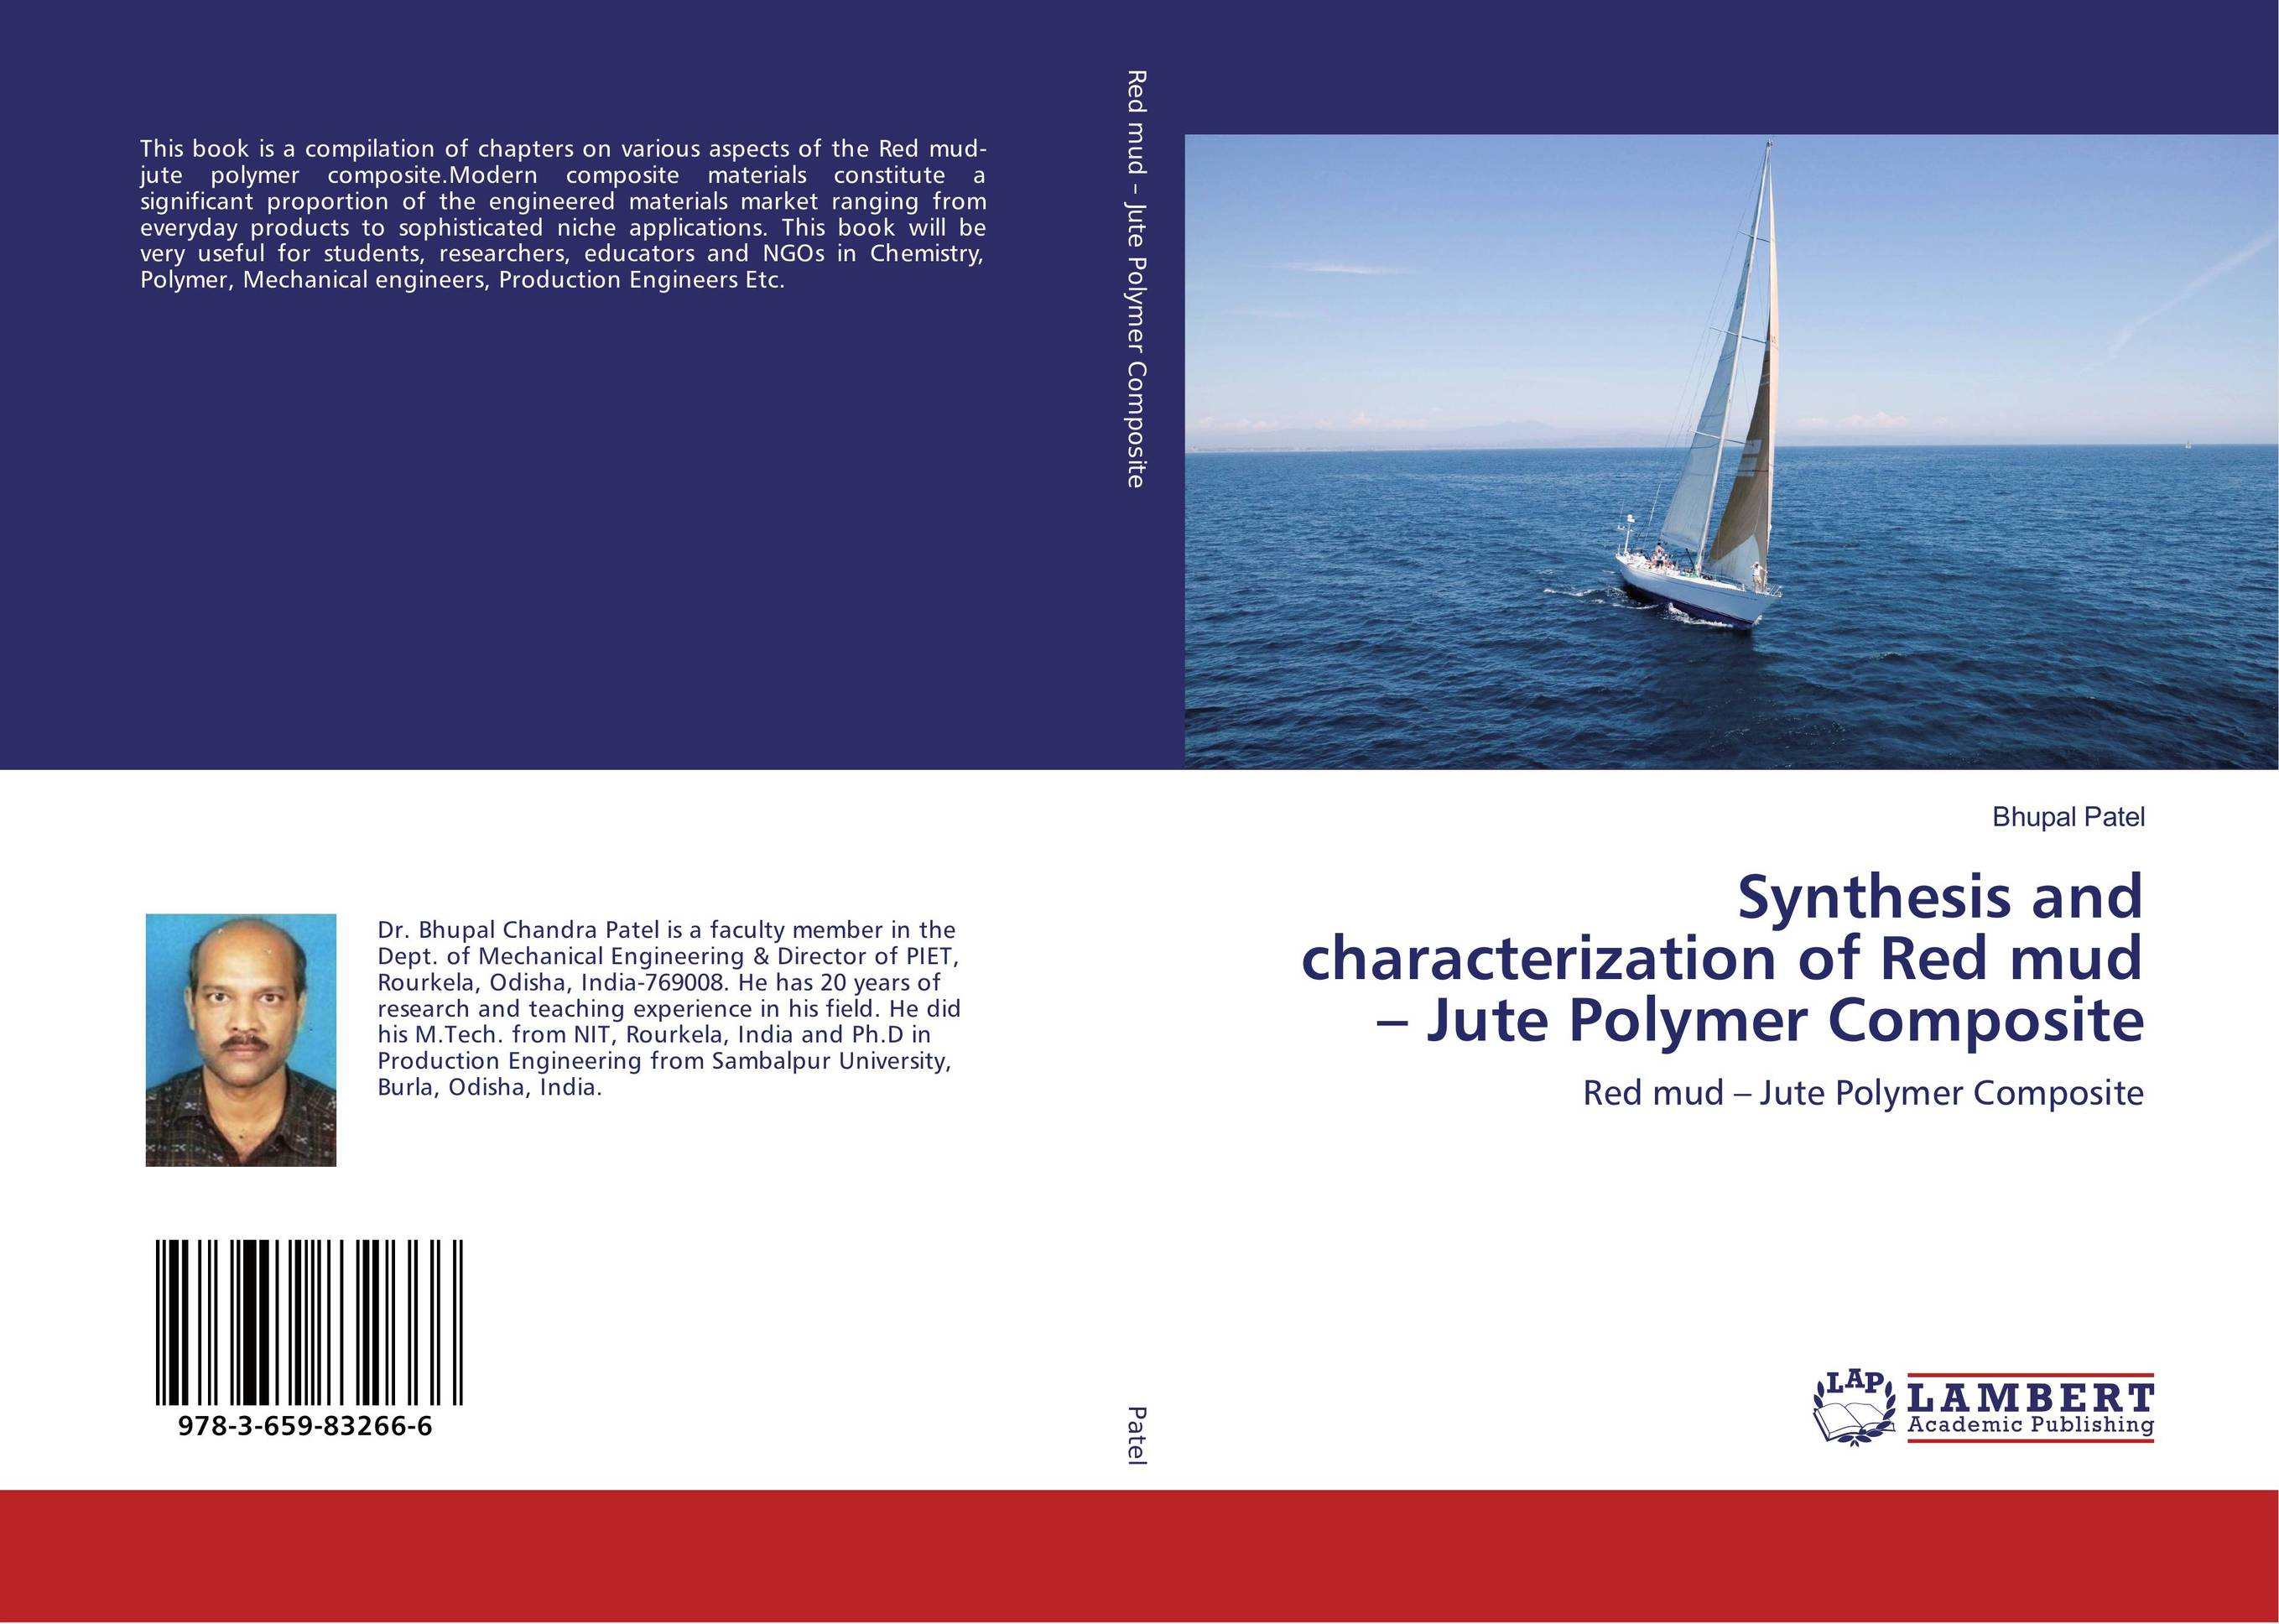 Synthesis and characterization of Red mud – Jute Polymer Composite